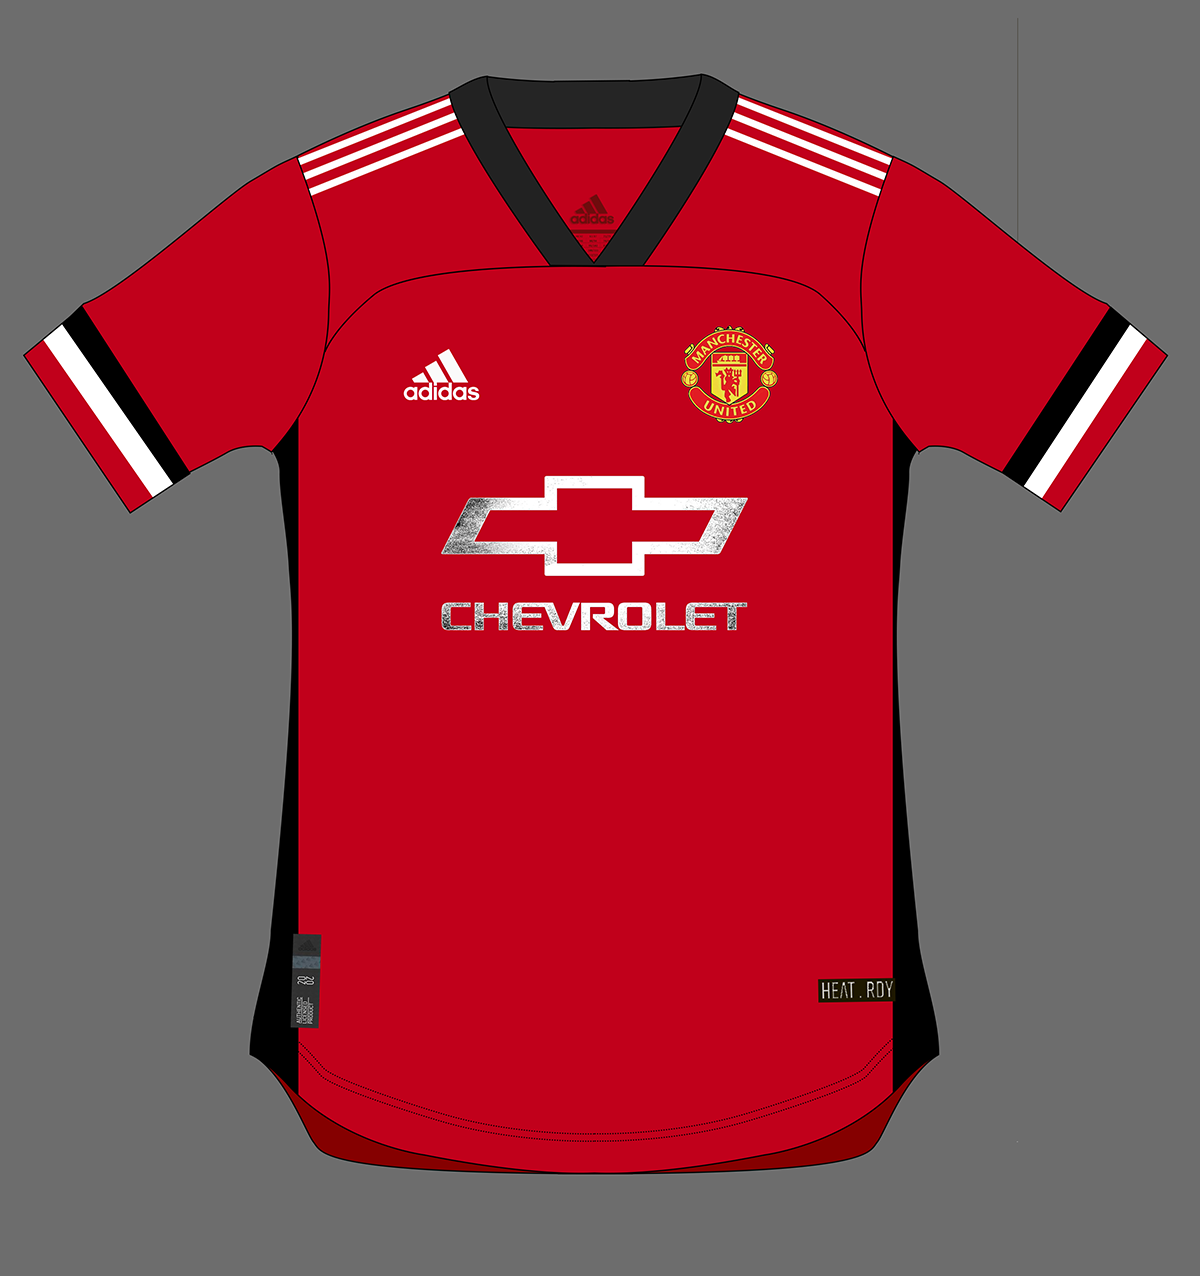 manchester united 2021 wallpapers wallpaper cave manchester united 2021 wallpapers